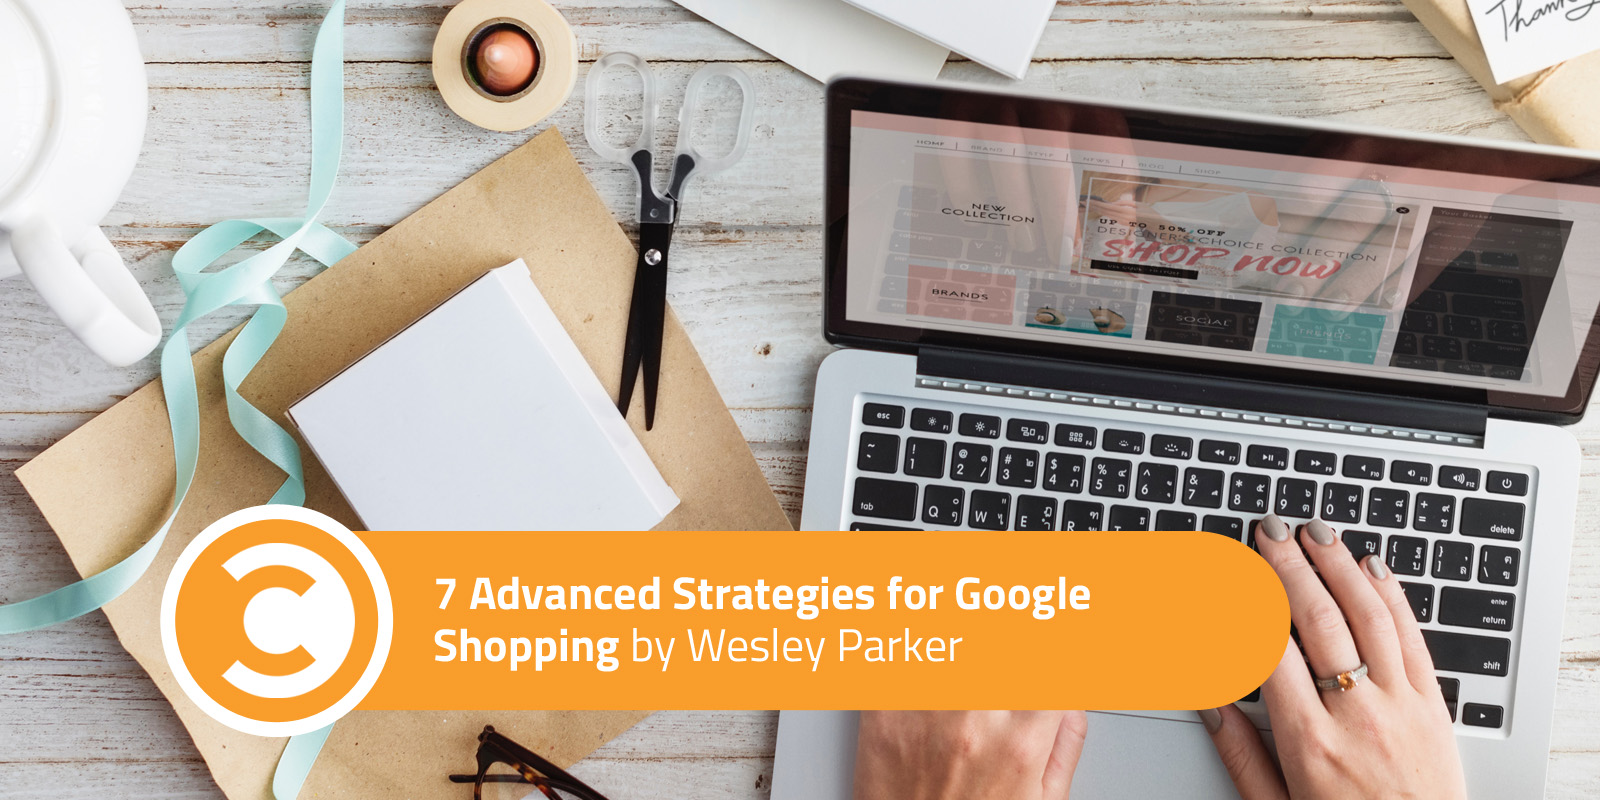 7 Advanced Strategies for Google Shopping